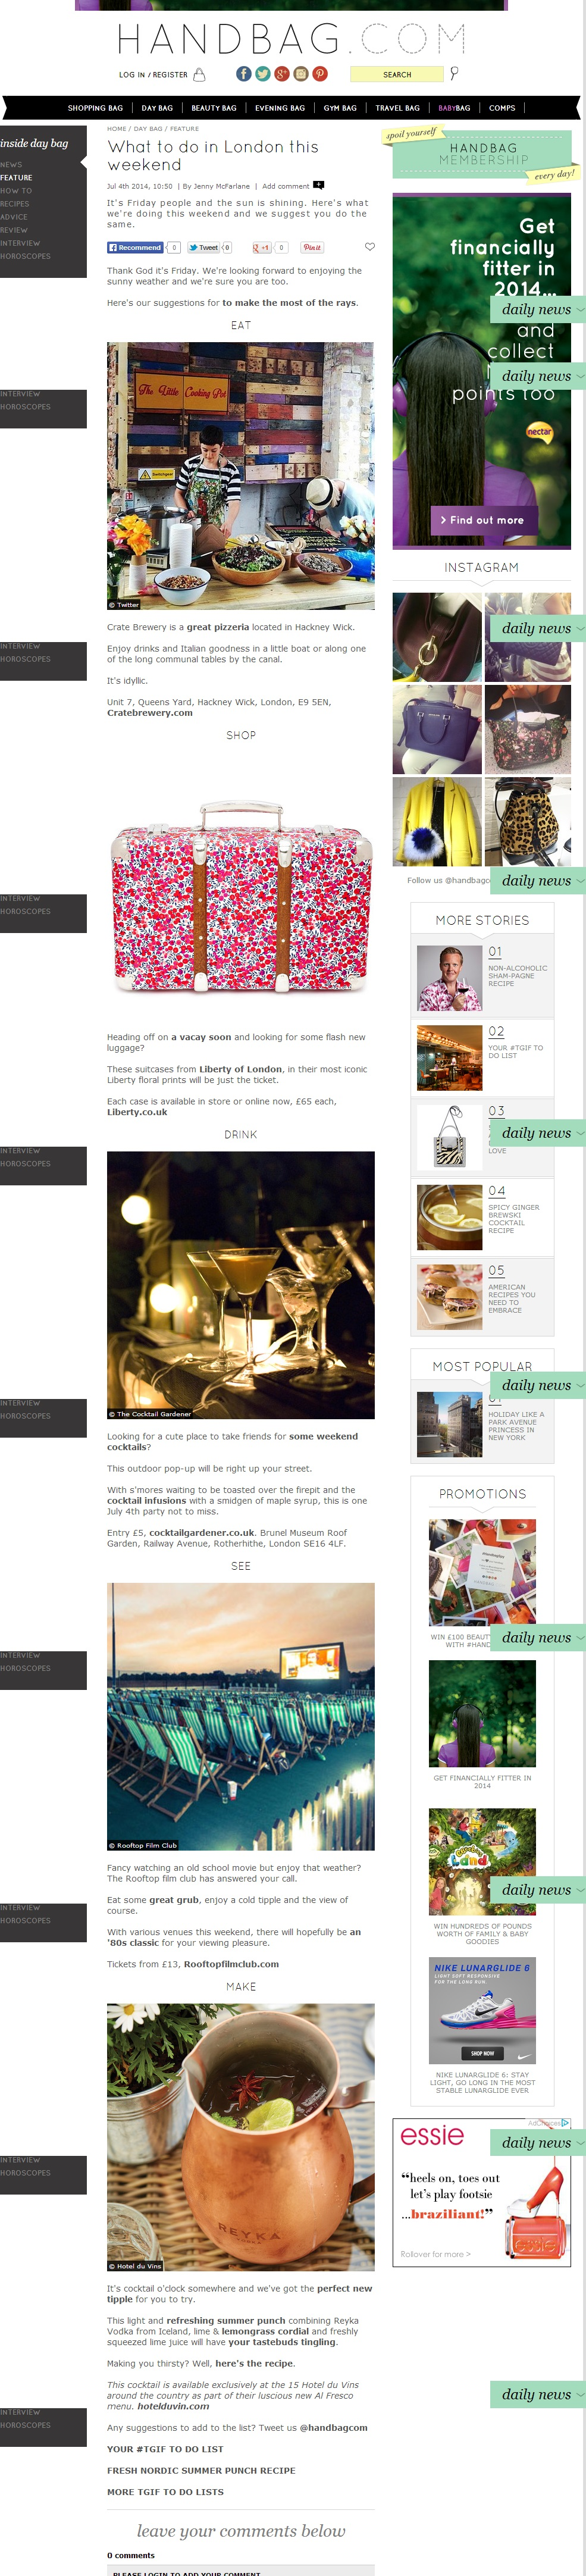 screencapture-www-handbag-com-day-bag-feature-a424509-what-to-do-in-london-this-weekend-html